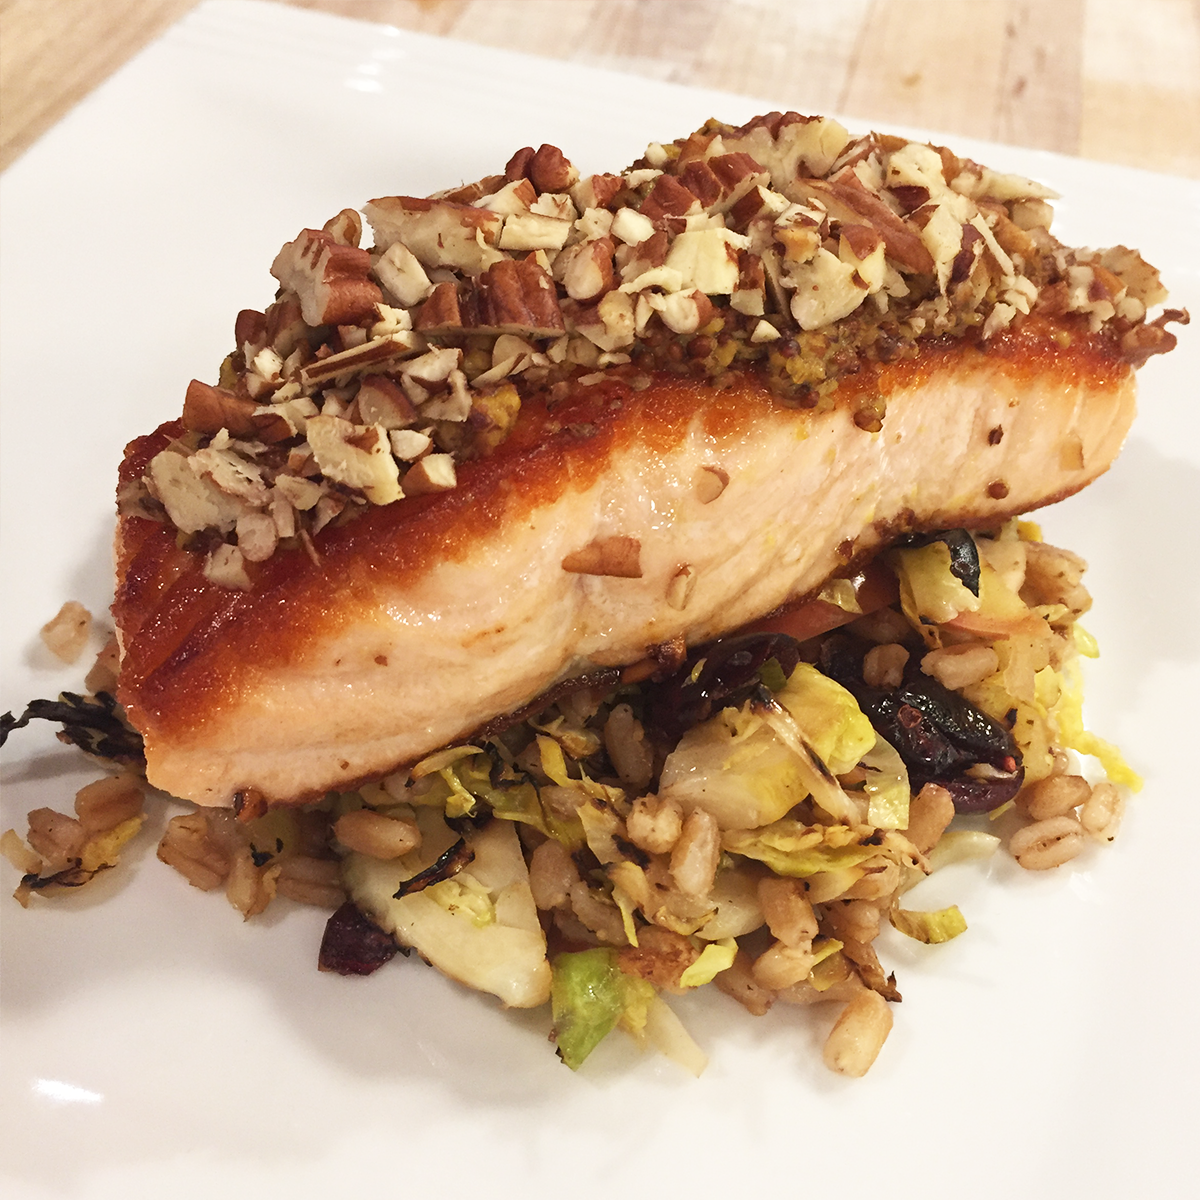 Mustard and Pecan Encrusted Salmon with Warm Slaw